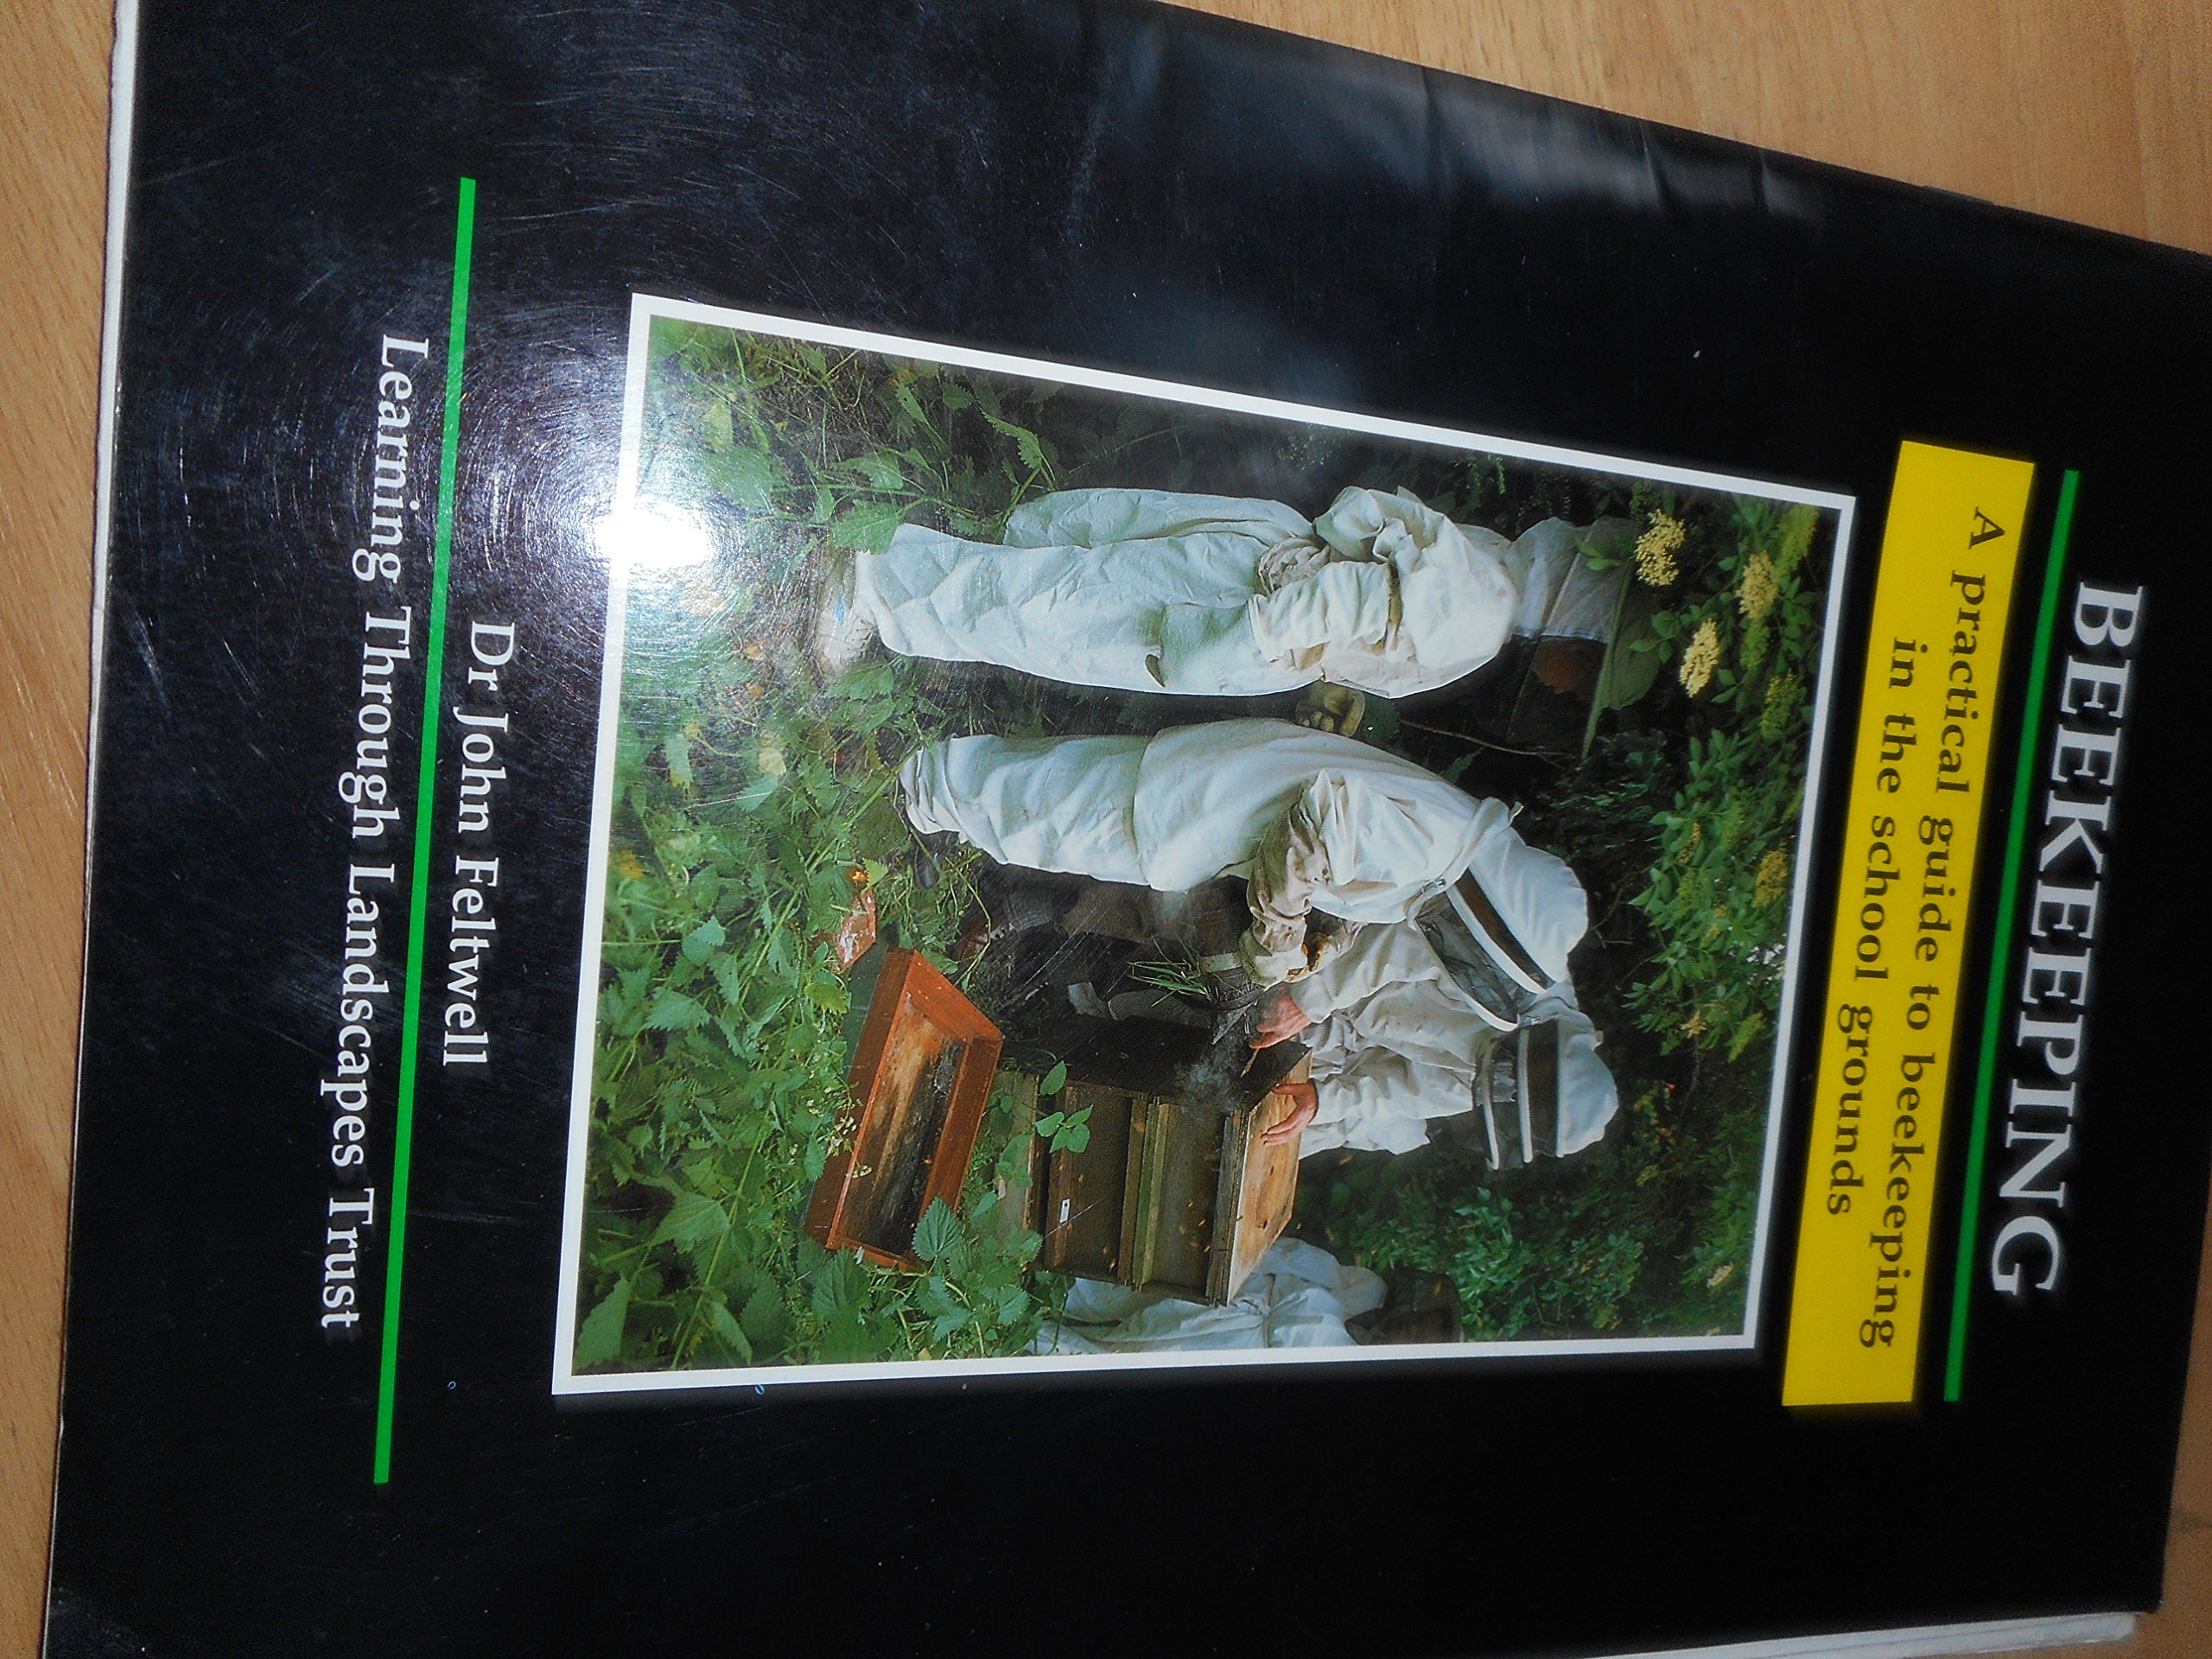 Beekeeping: A Practical Guide to Beekeeping in the School Grounds